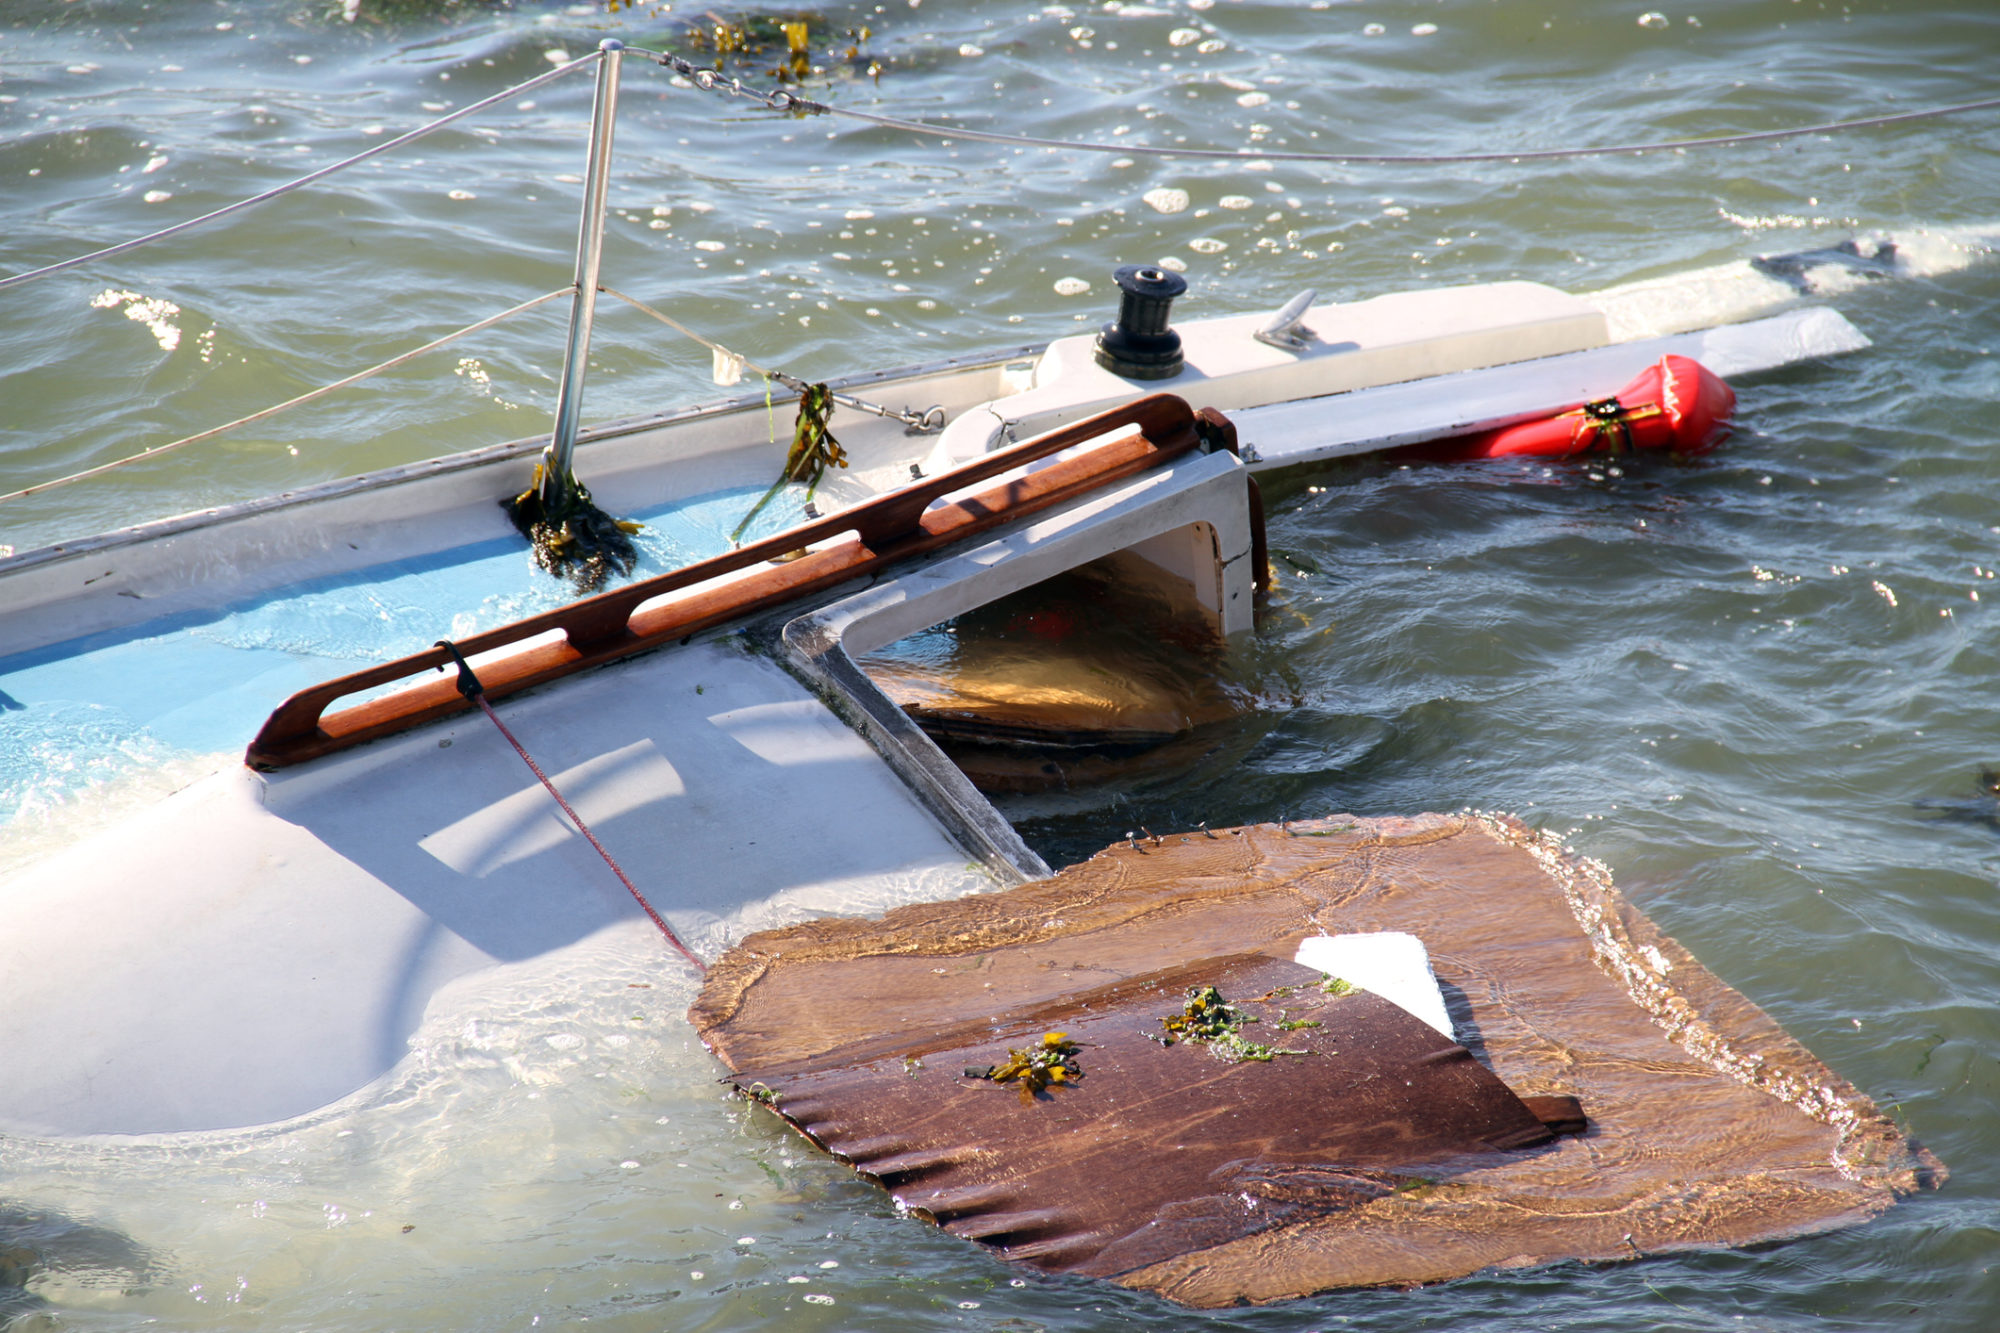 Aftermath of a Boating Accident Stock Photo